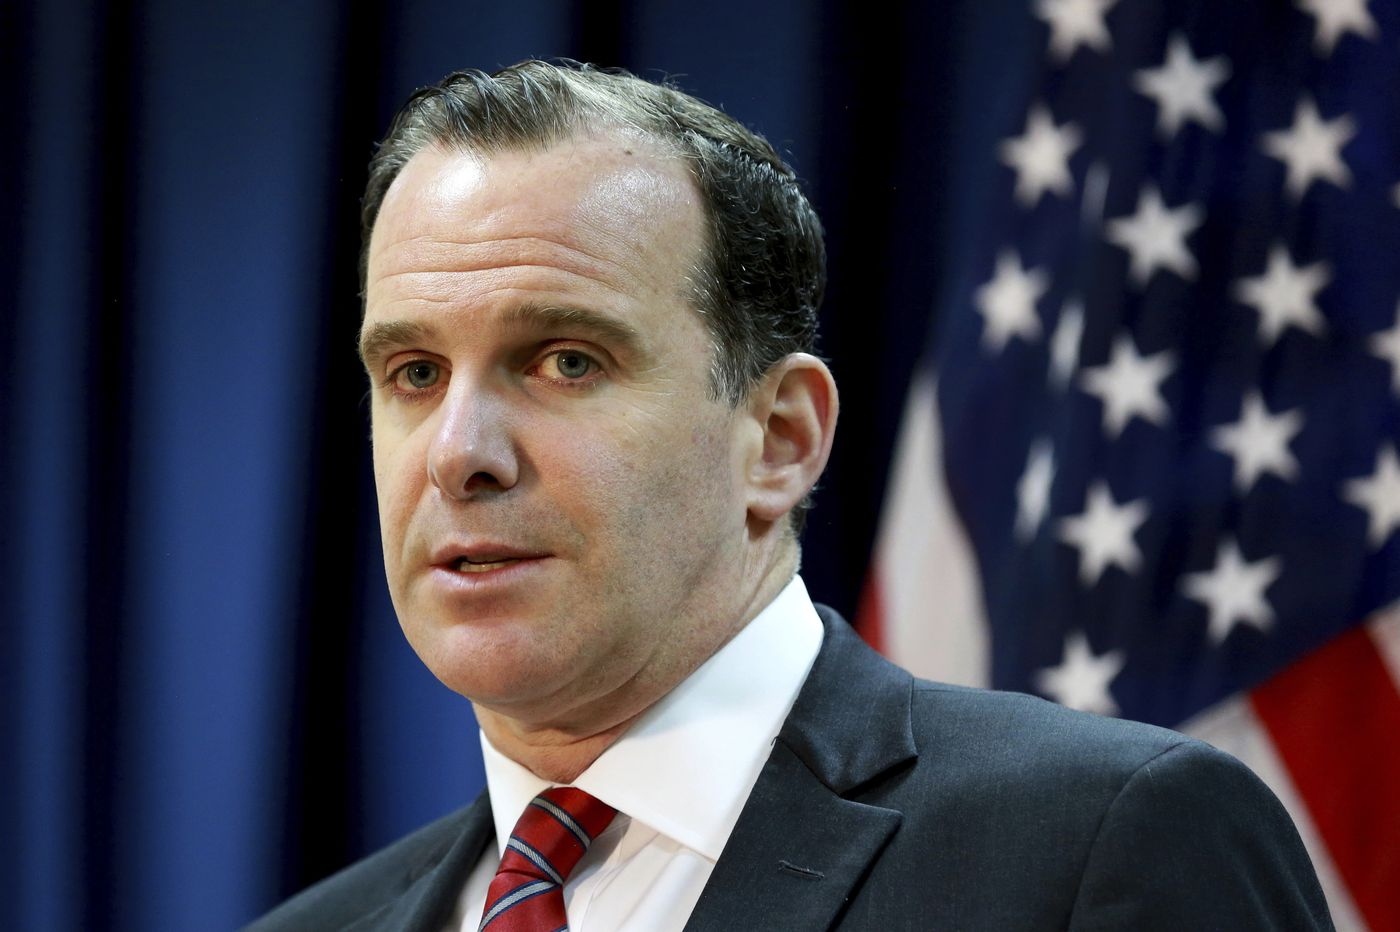 U.S. envoy to anti-IS coalition quits over Trump's Syria move